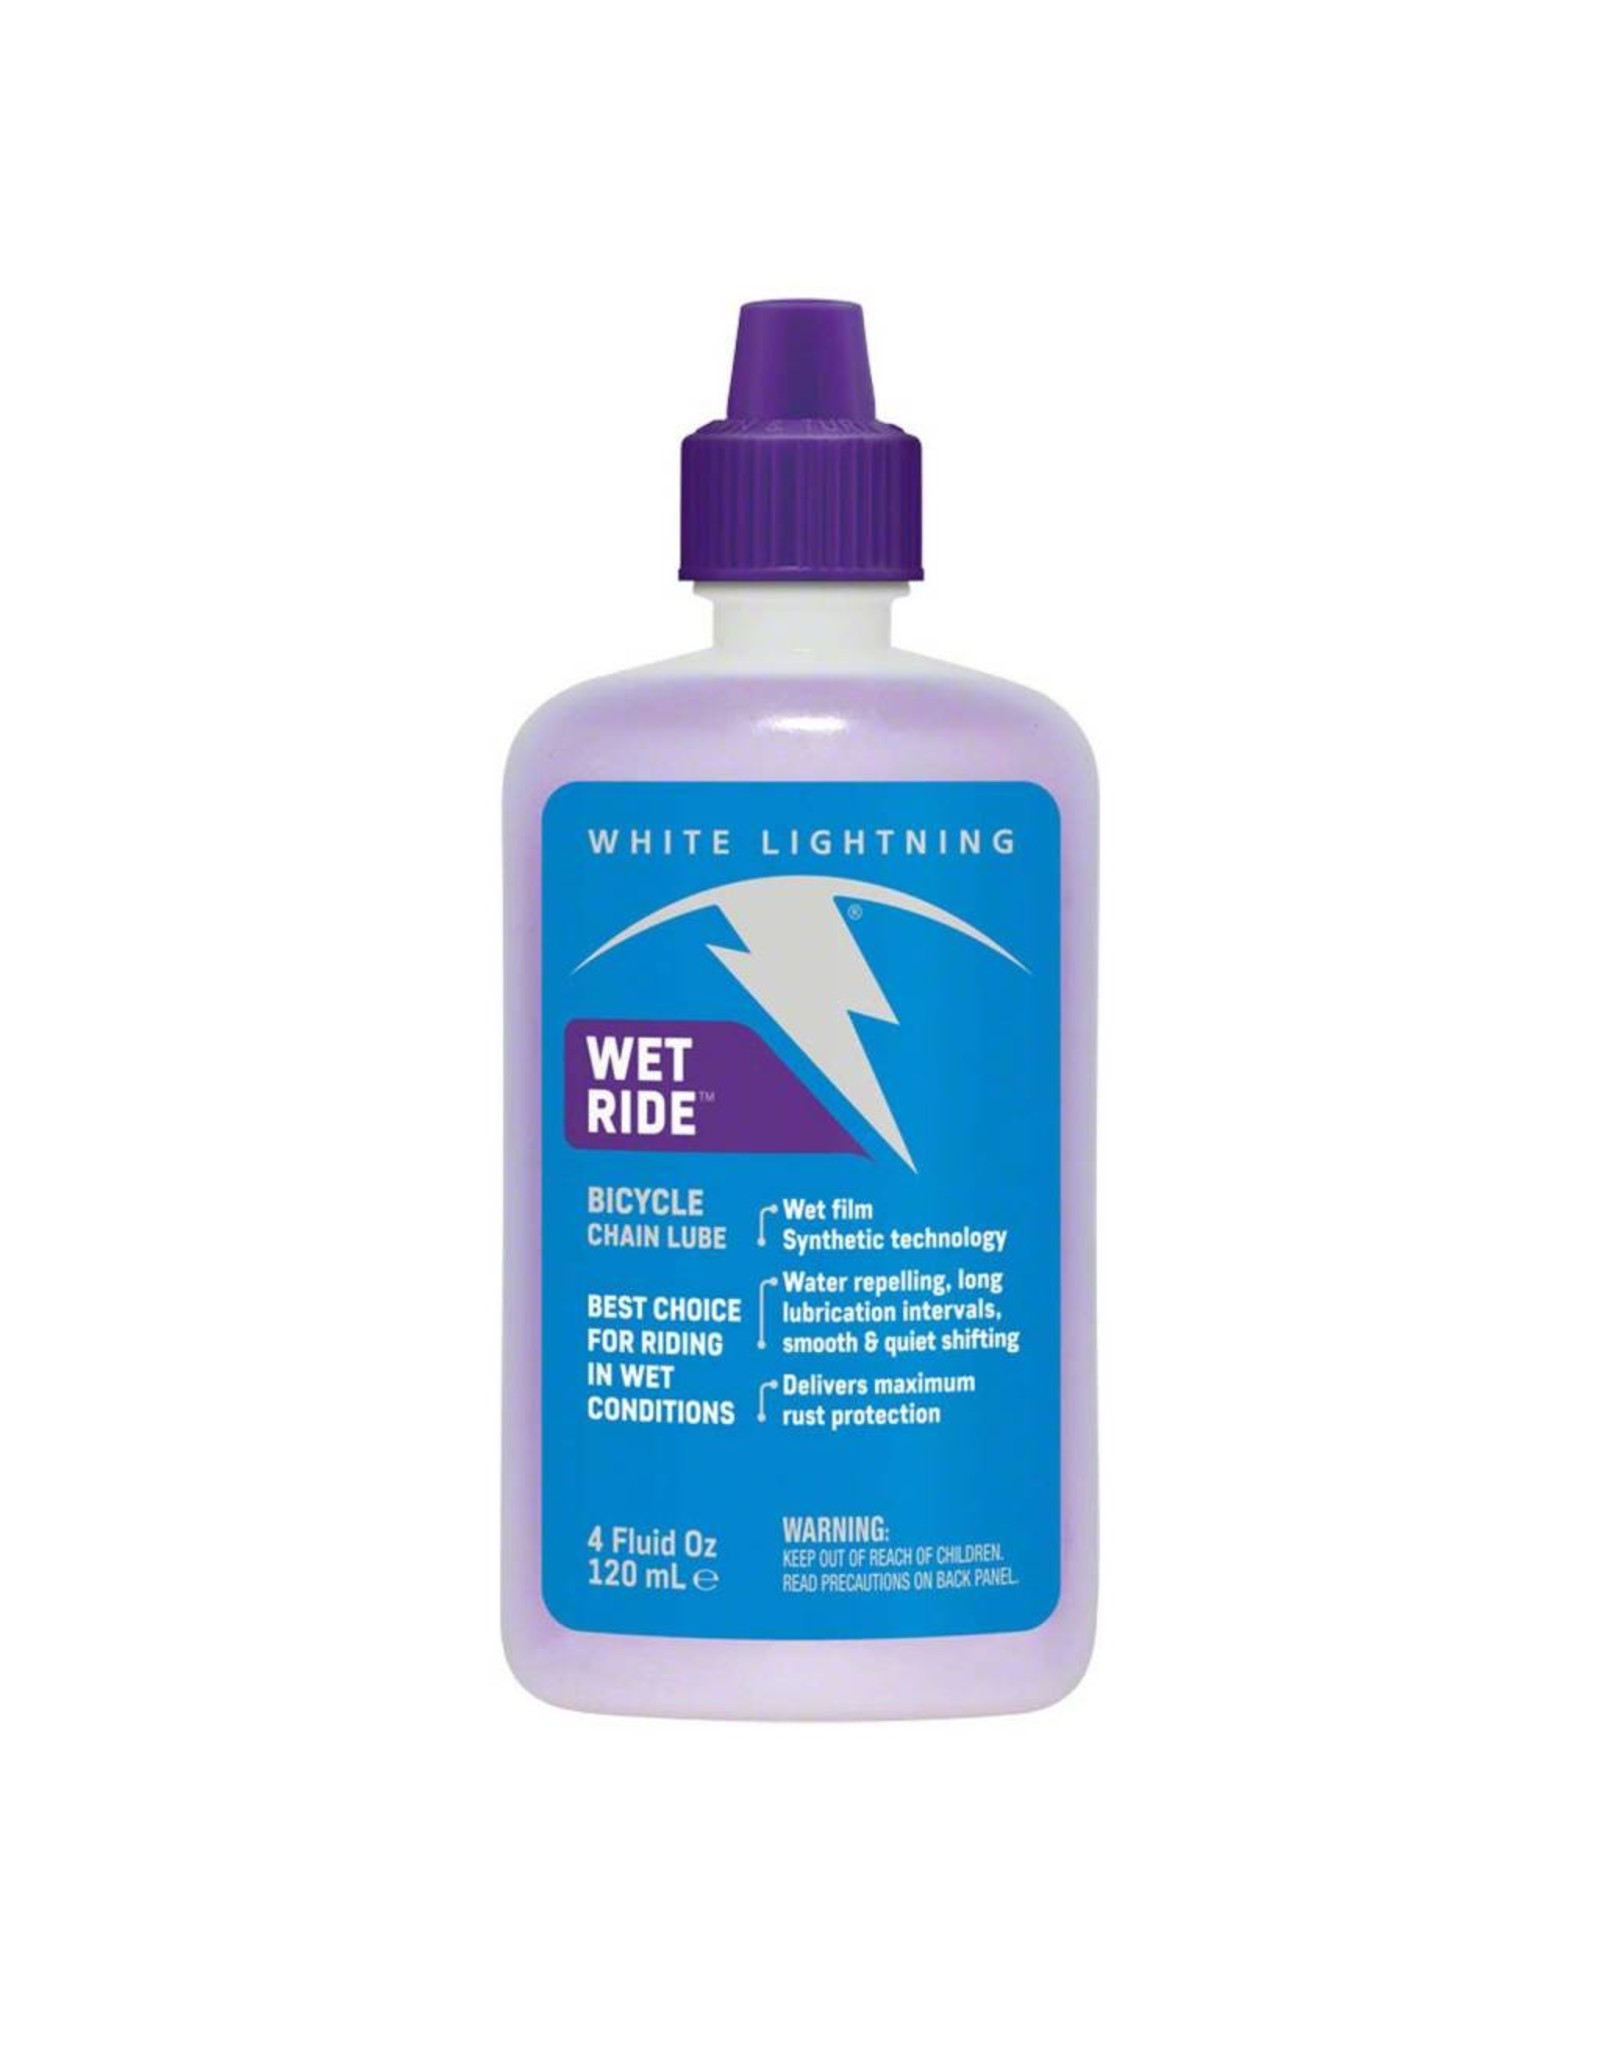 WHITE LIGHTNING LUBE WET RIDE 4oz BOTTLE